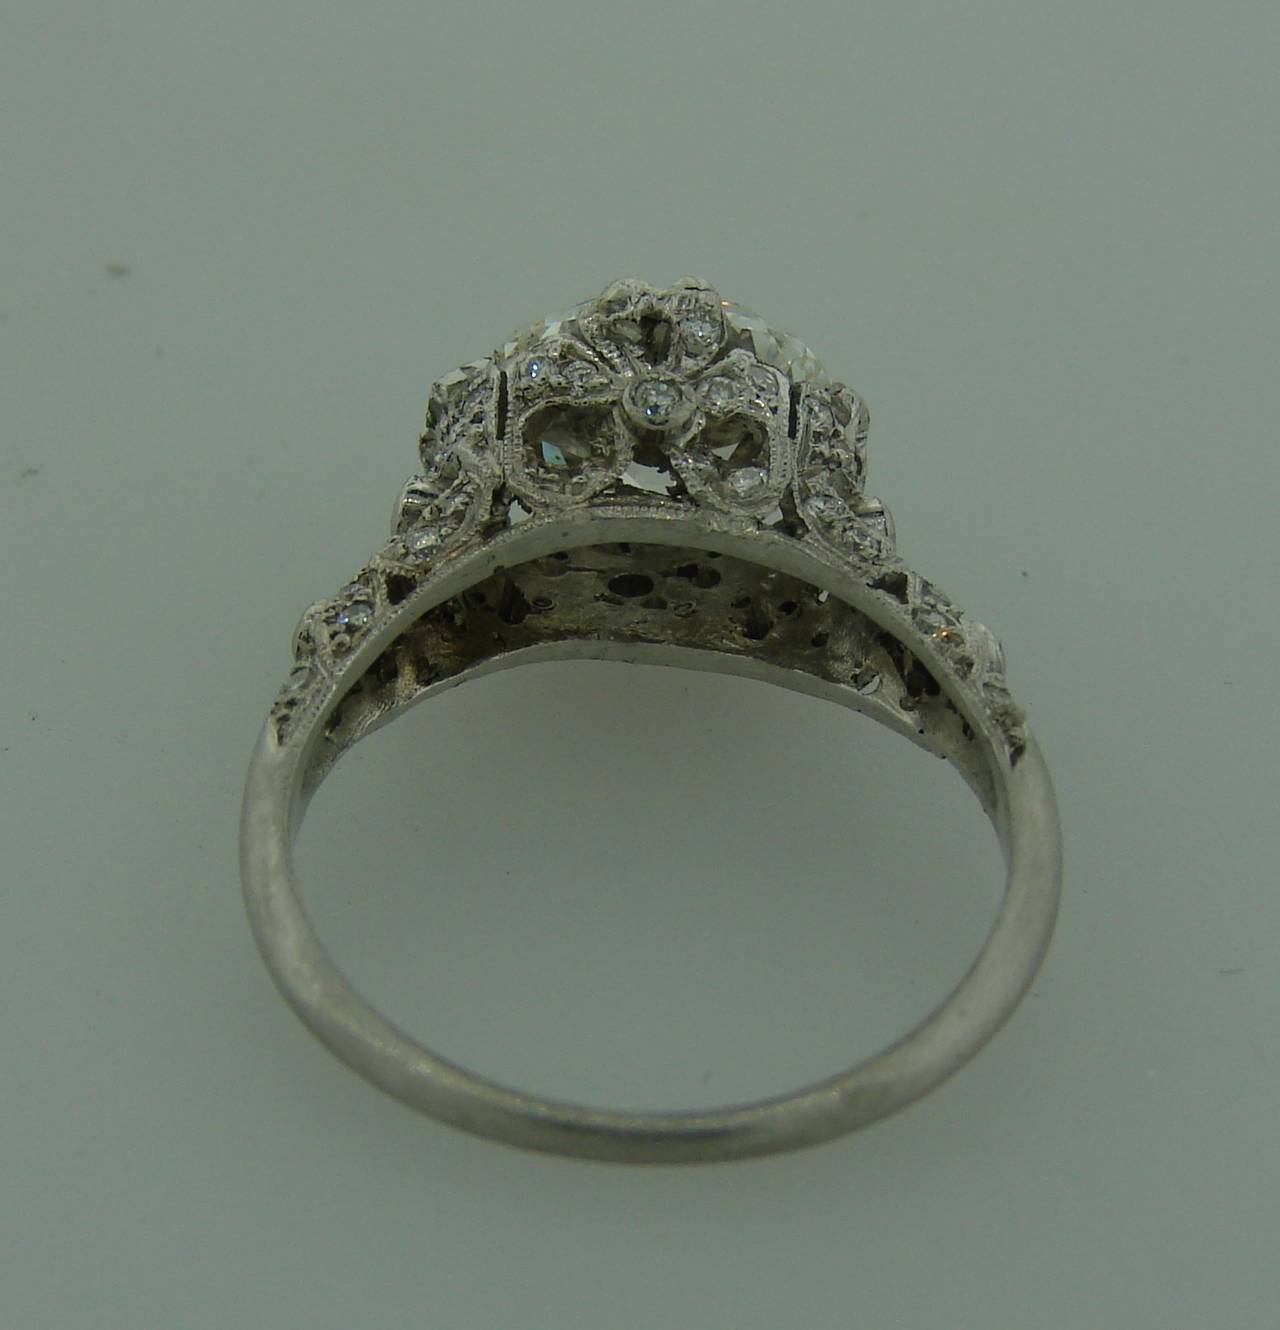 3.02 Carat GIA Cert Cushion Cut Diamond Platinum Engagement Ring circa 1920s 9